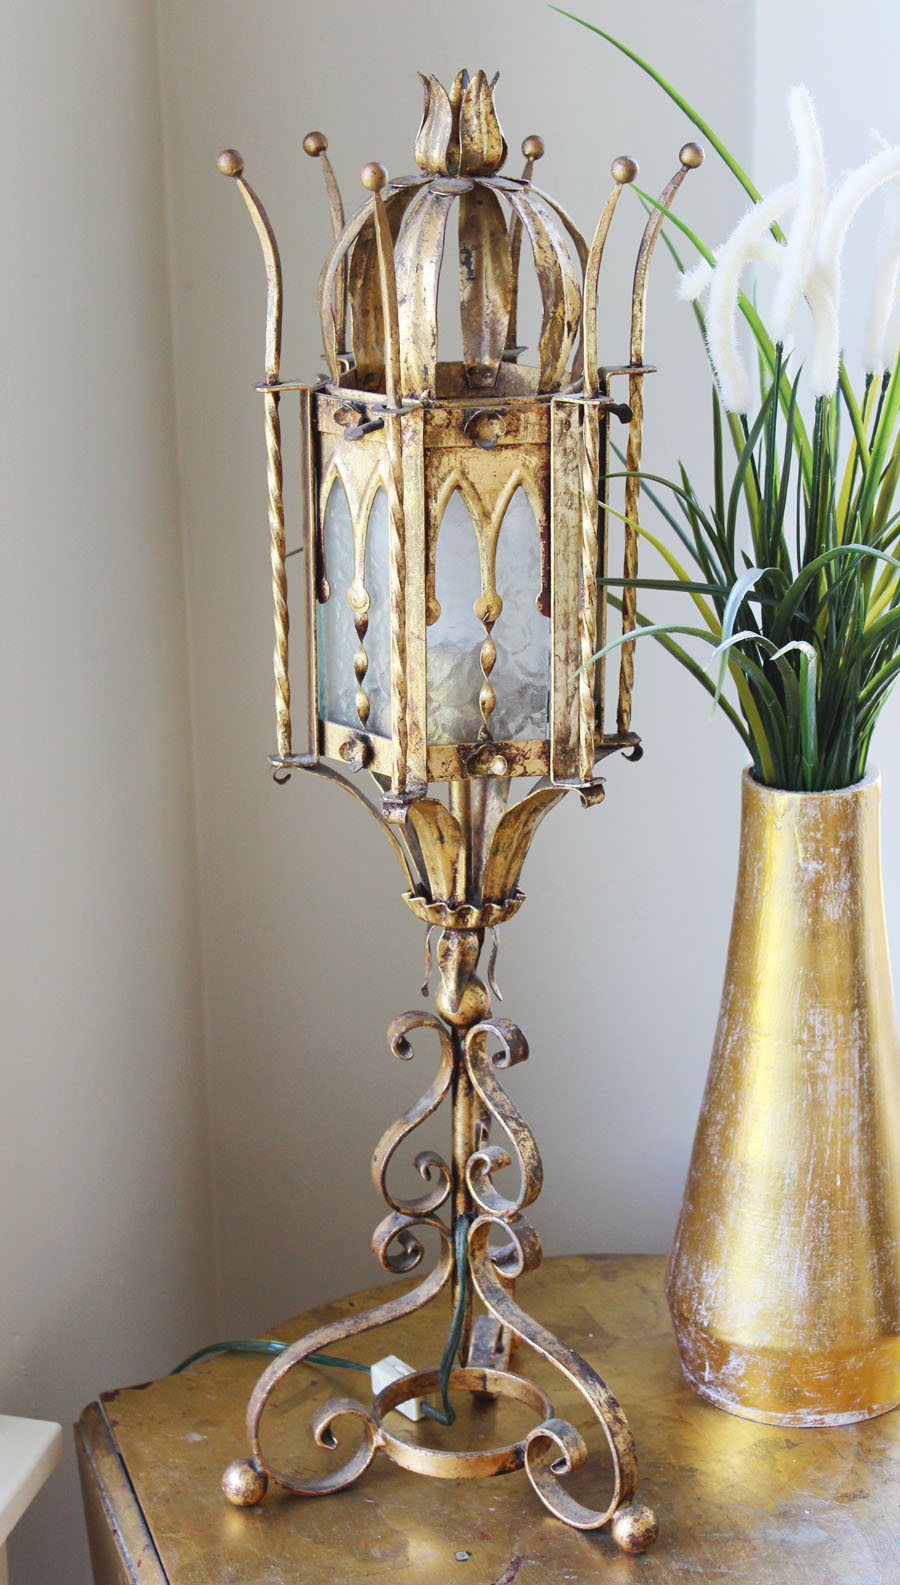 Made in Italy Antique Lantern Gothic Style Lantern Table Lamp